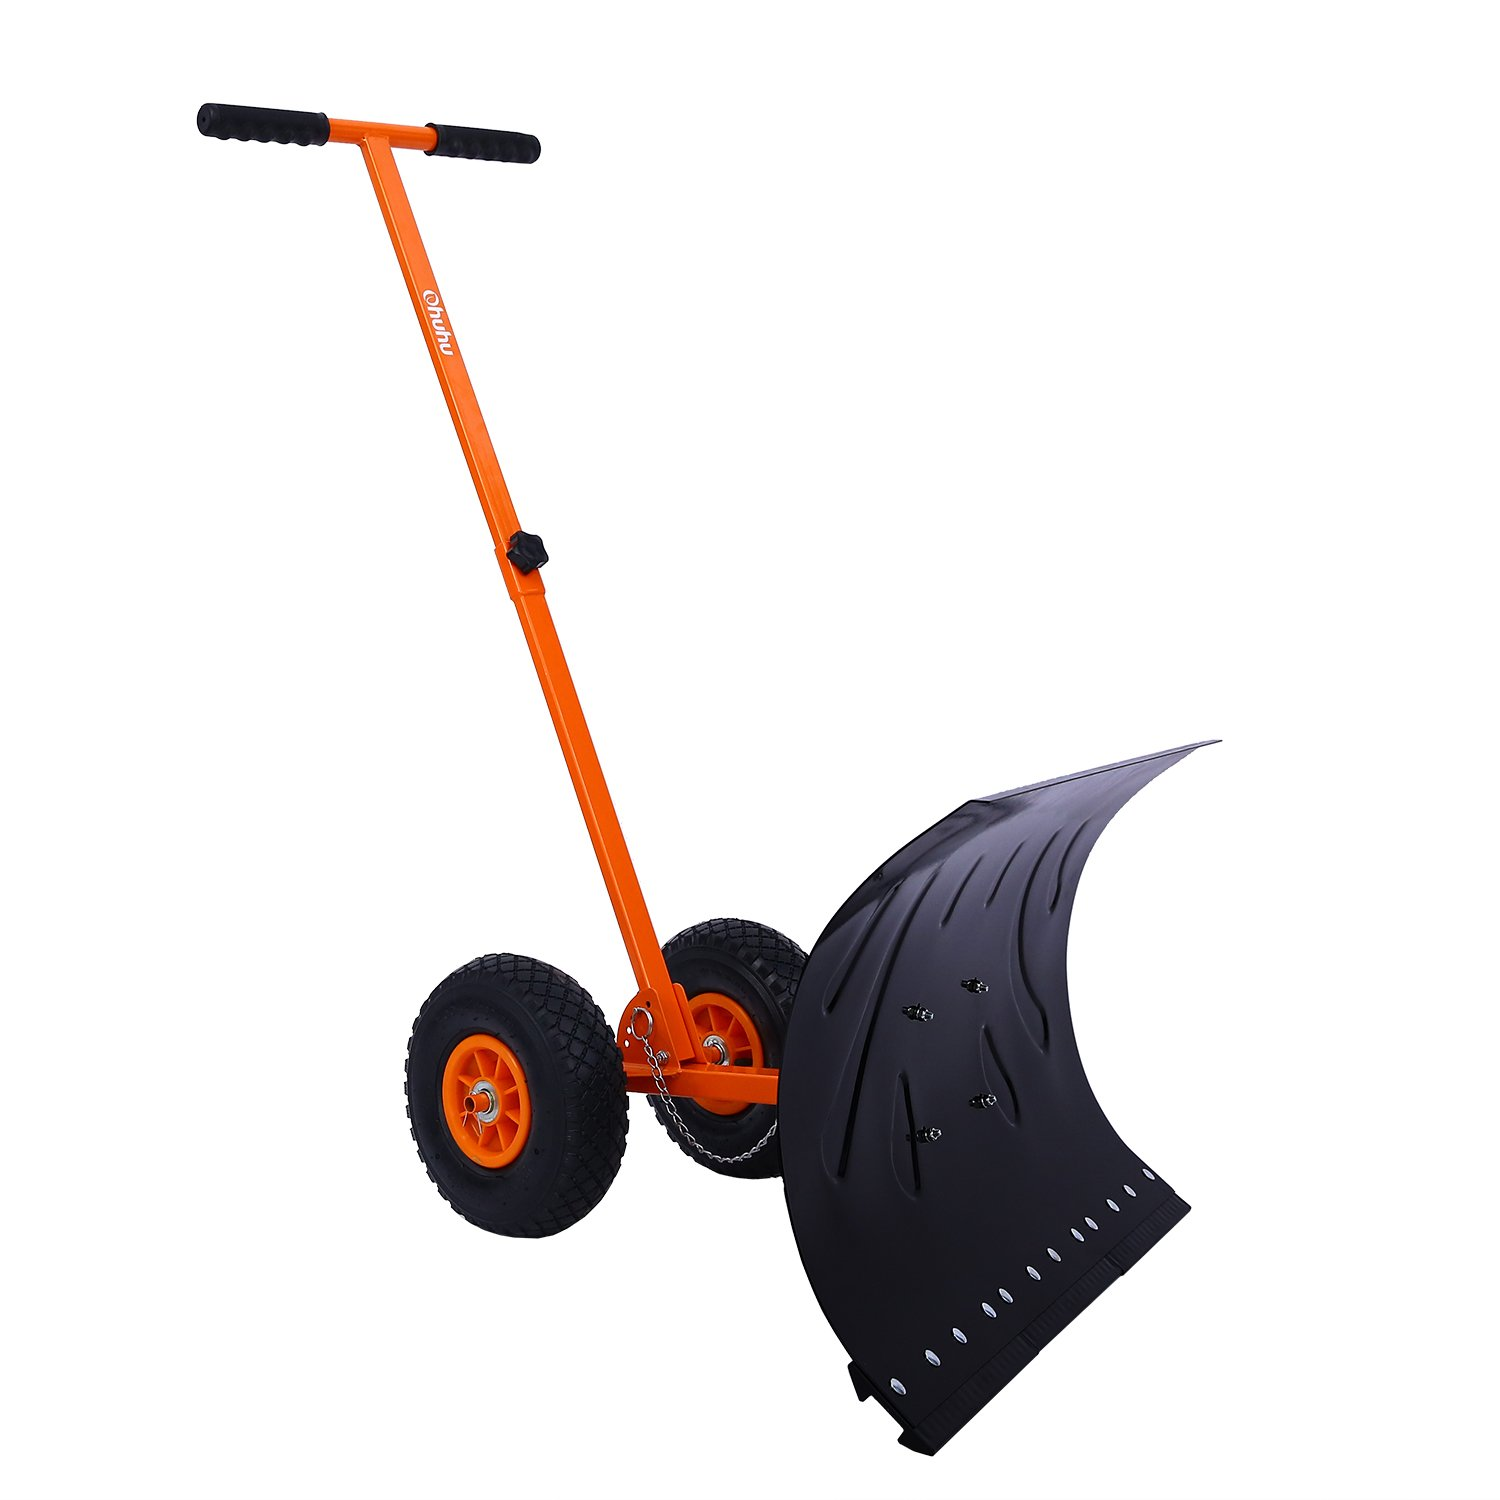 Ohuhu Adjustable Wheeled Snow Shovel Pusher, Rolling Snow Plow Shovels Snow Removal Tool by Ohuhu